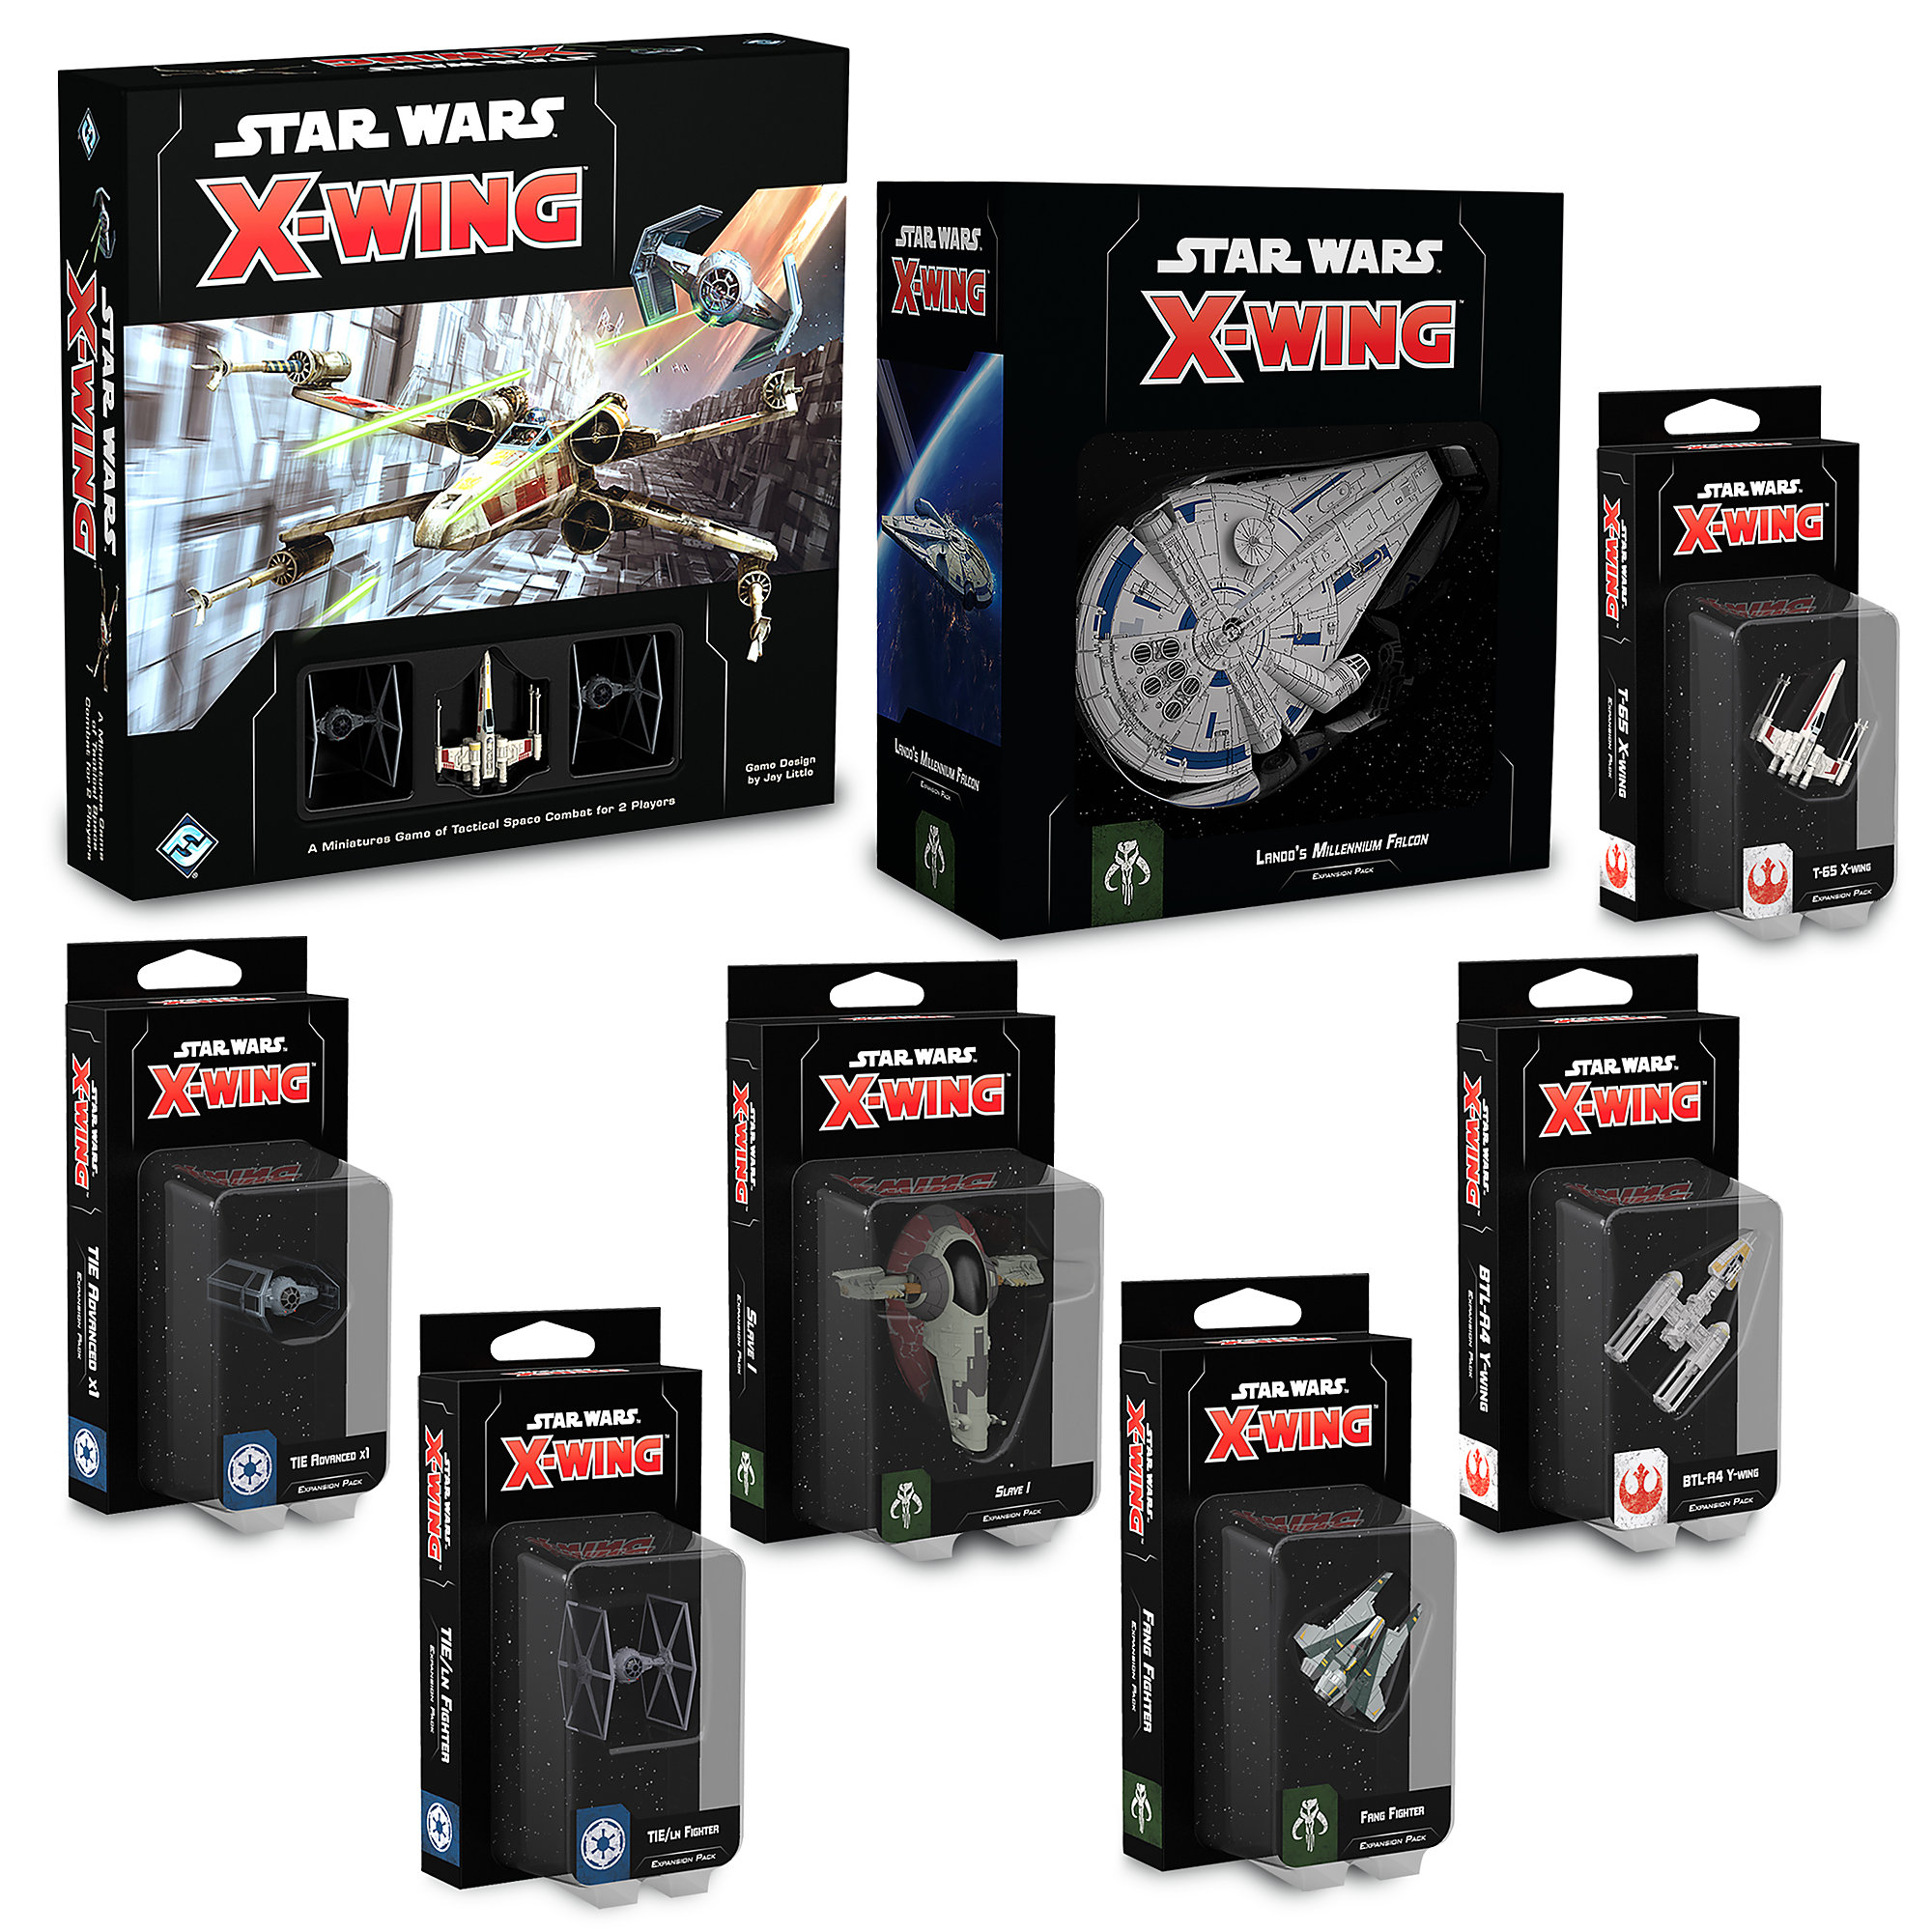 Star Wars Fantasy Flight X-Wing 2.0 Collection